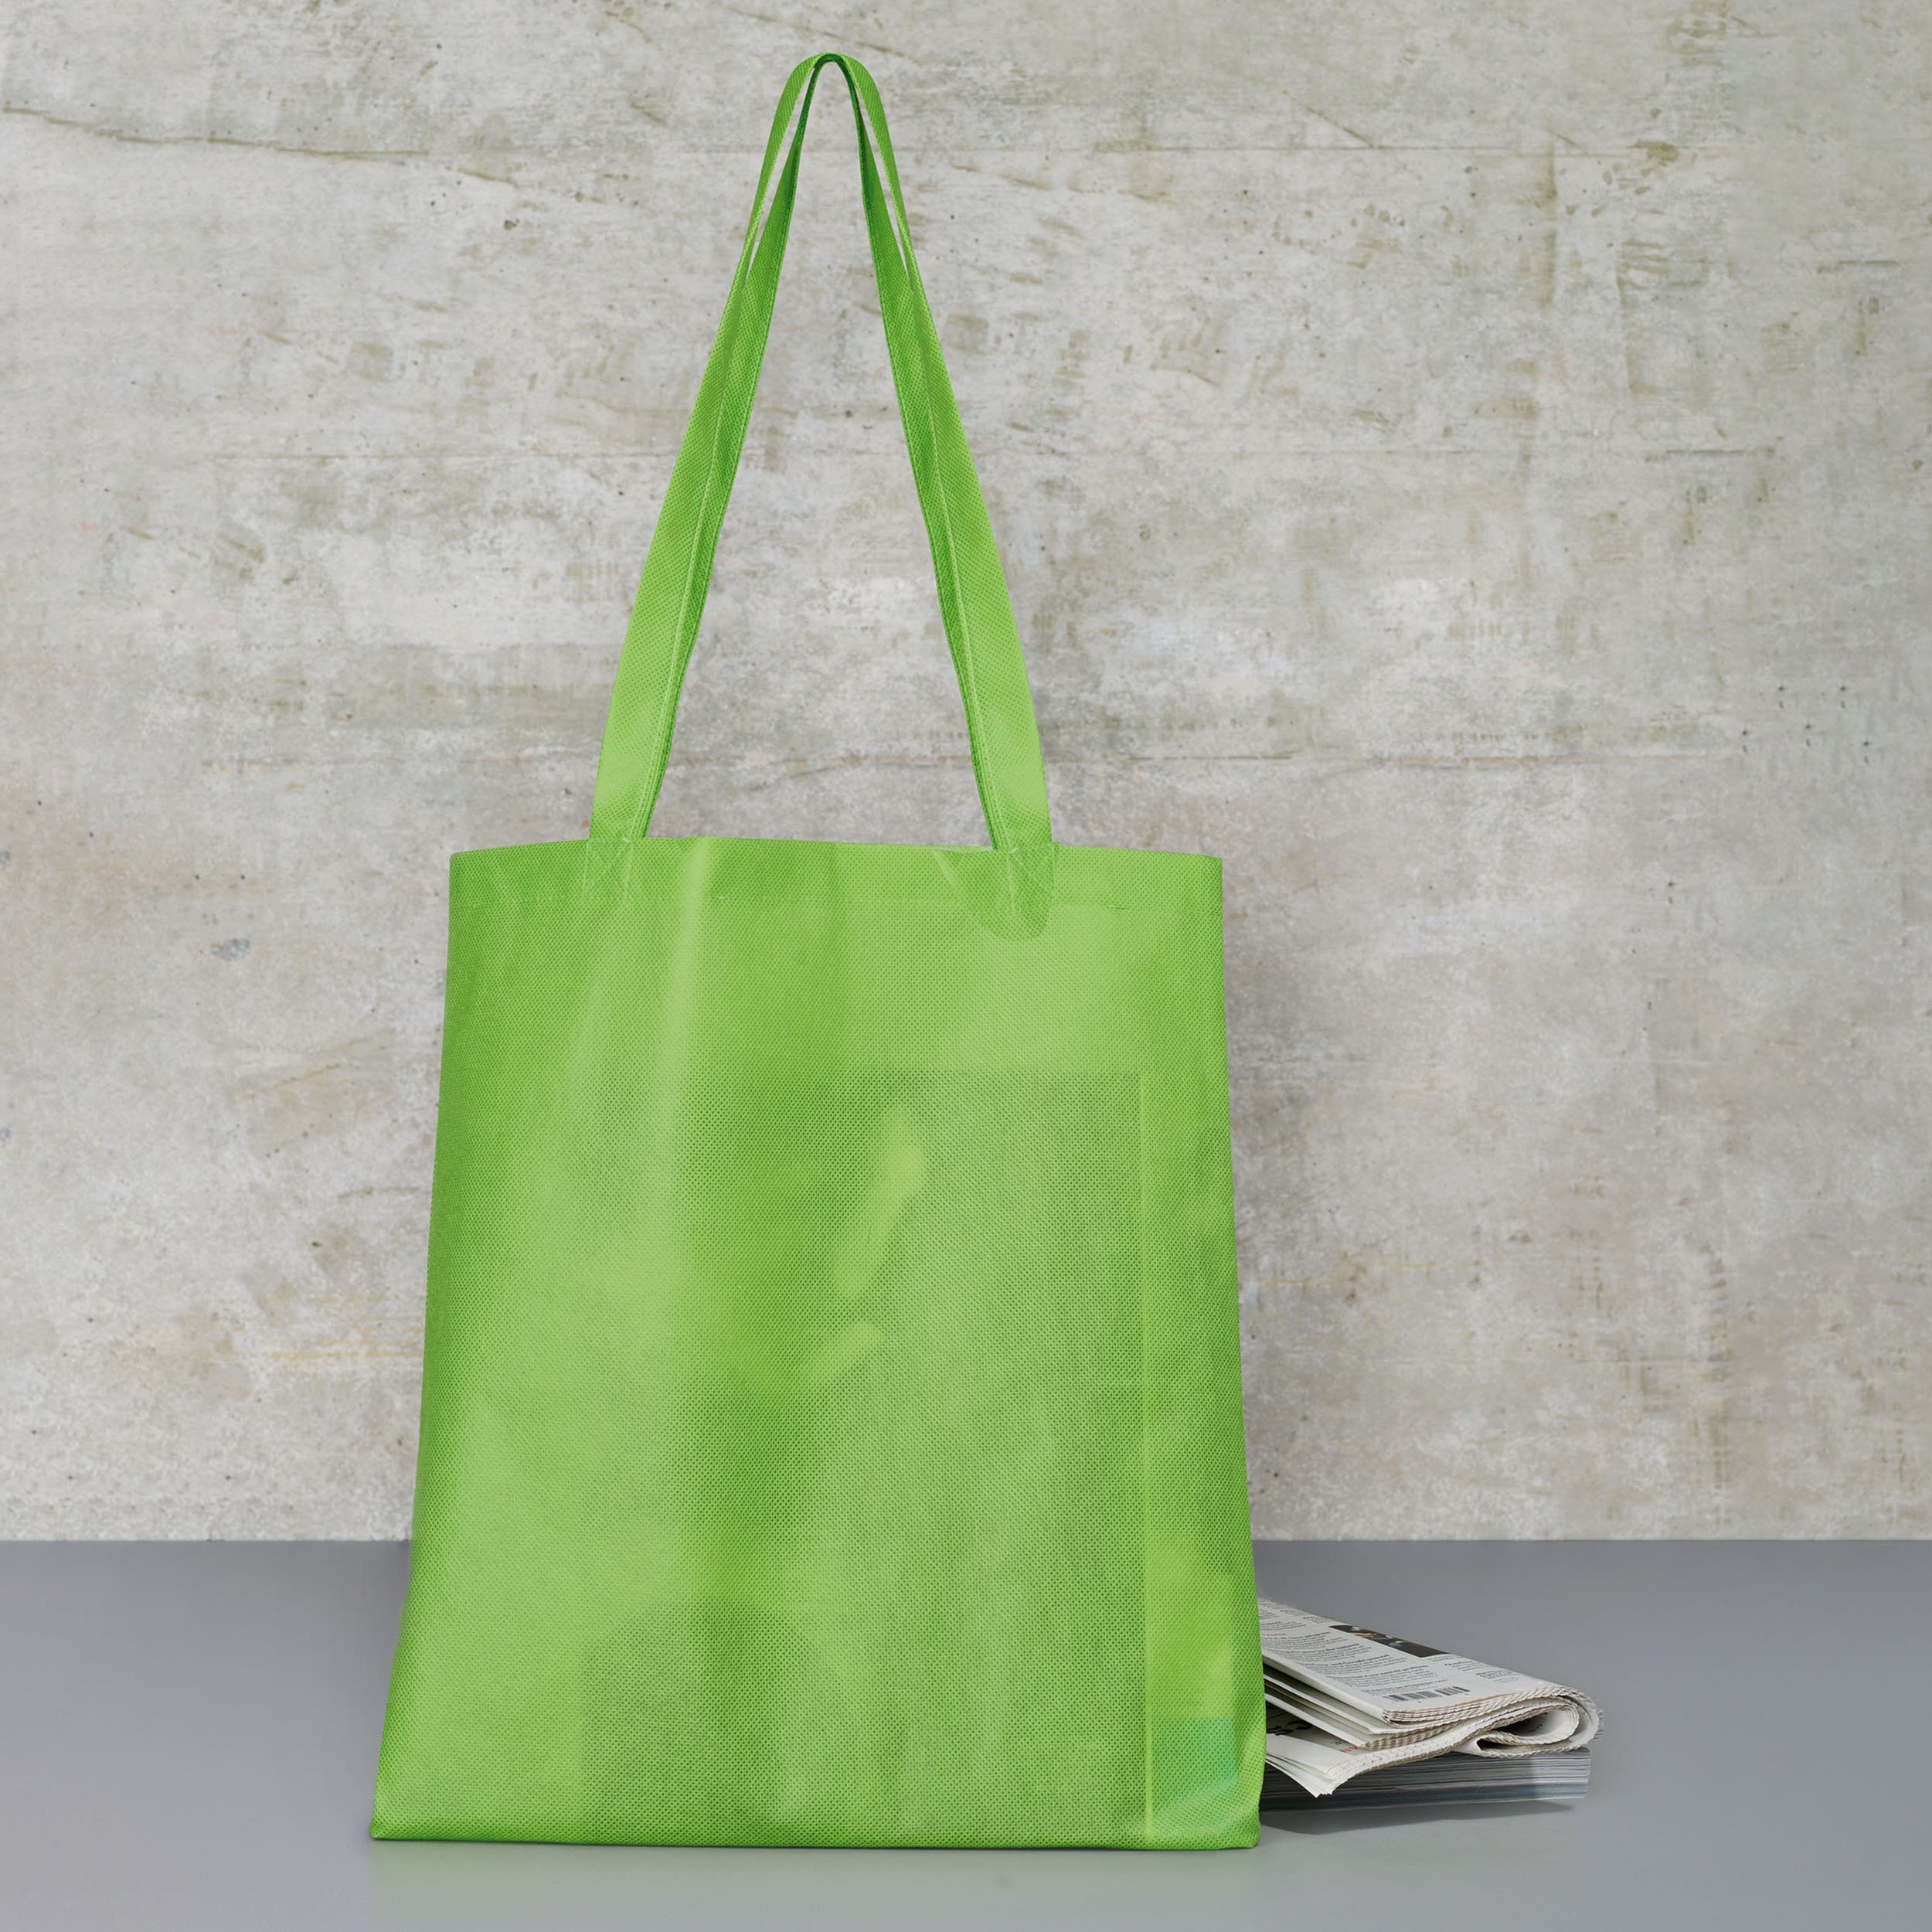 Bags by Jassz Willow totebag